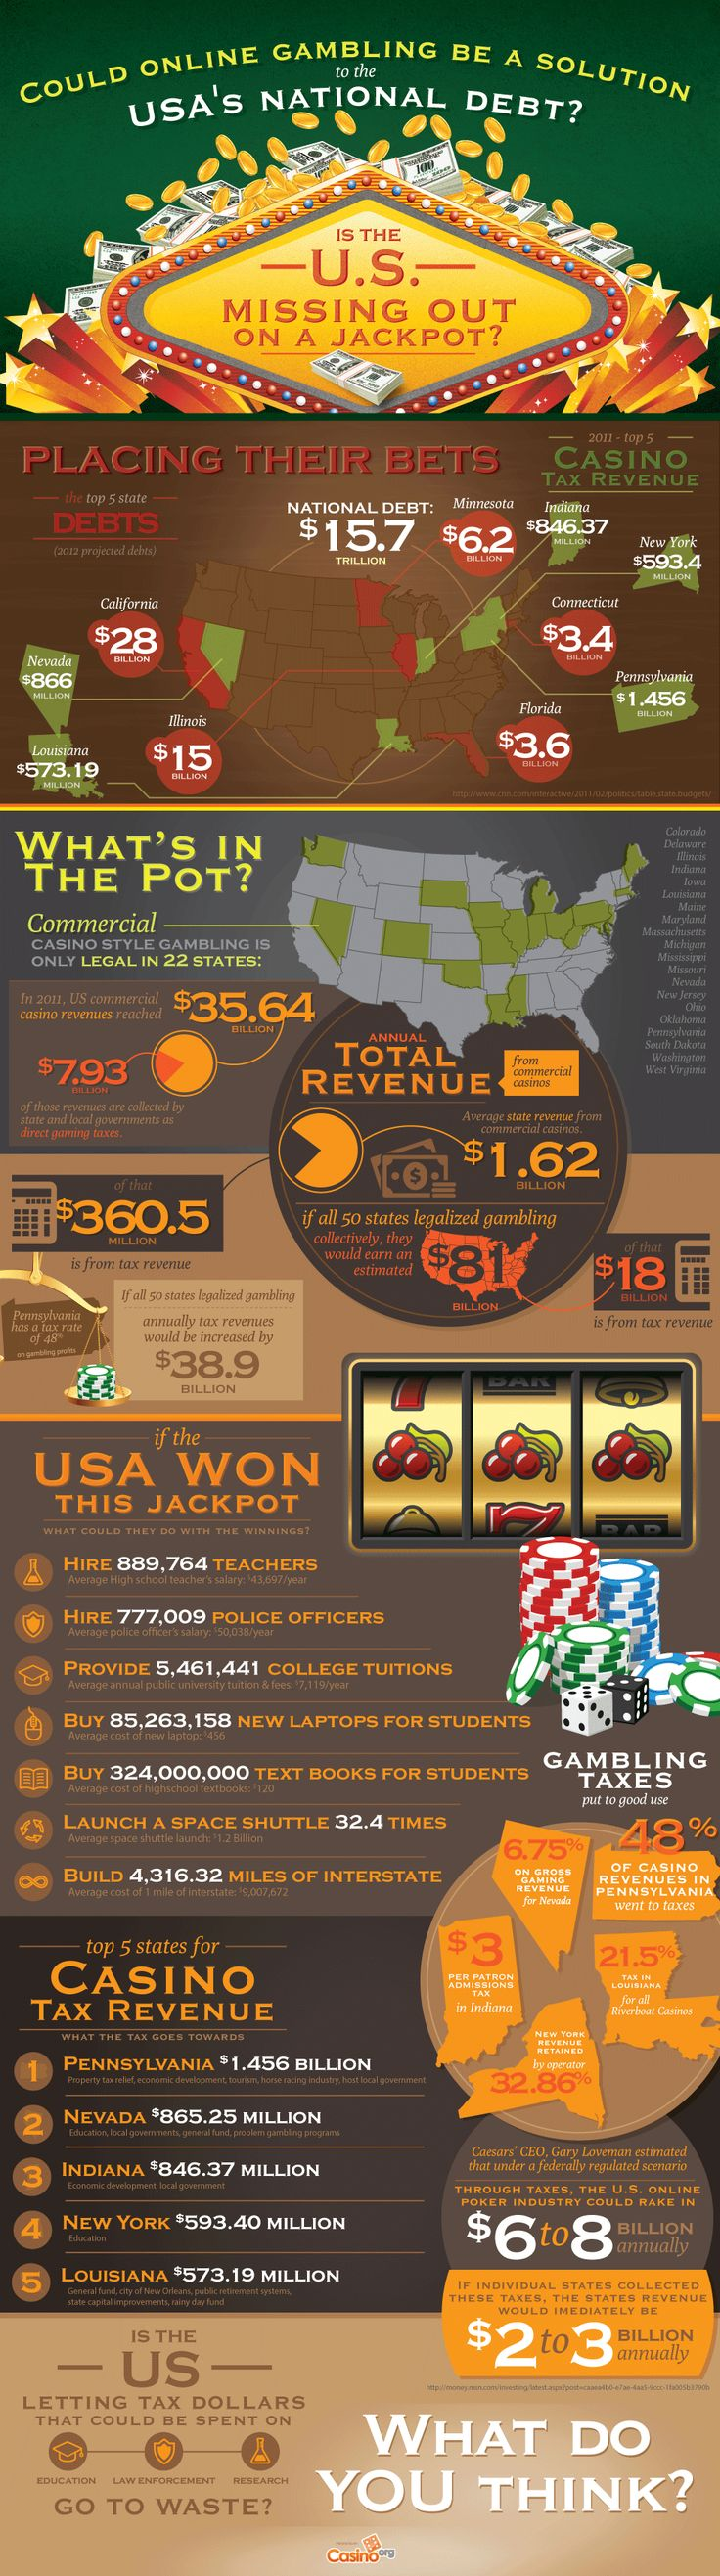 Gambling & USA Debt Infographic - How legalized online gambling could contribute to fixing the USA's debt crisis.